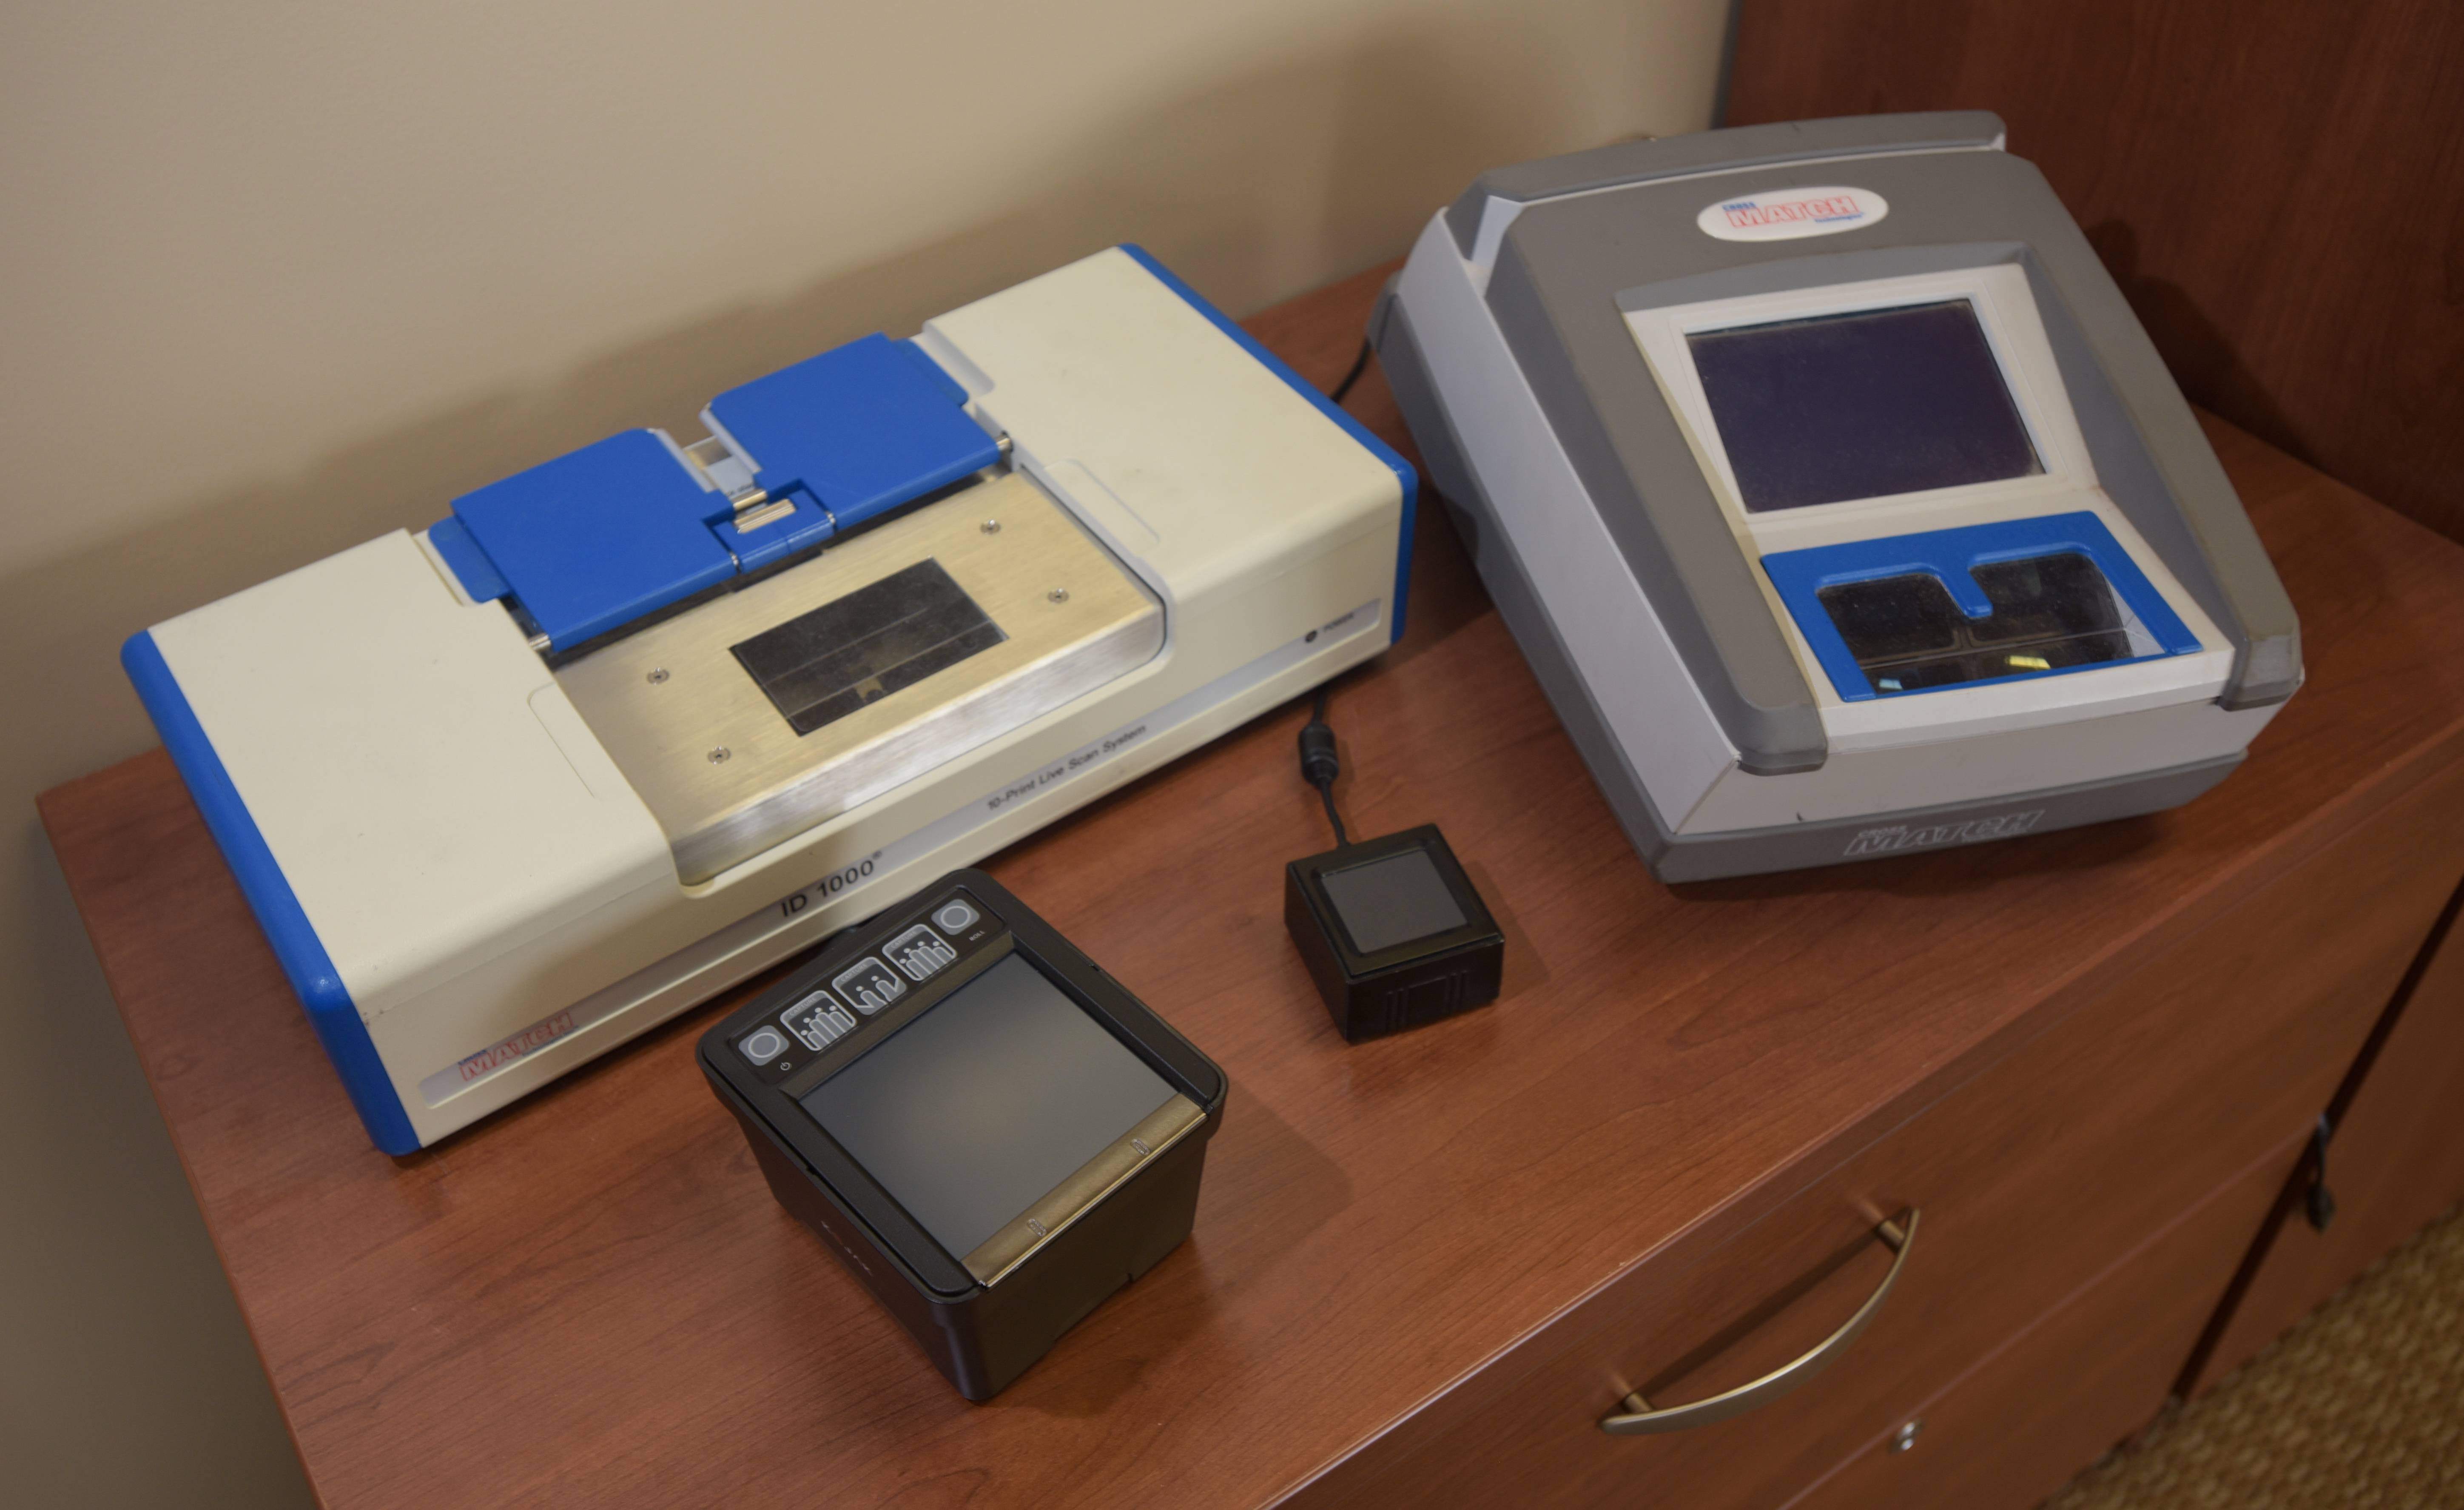 The older and larger fingerprint readers, such as the Cross Match ID 1000 and the Cross Match ID 500, have been replace with the much smaller and lighter newer readers, such as the Integrated Biometrics Kojak and Watson Mini fingerprint readers.